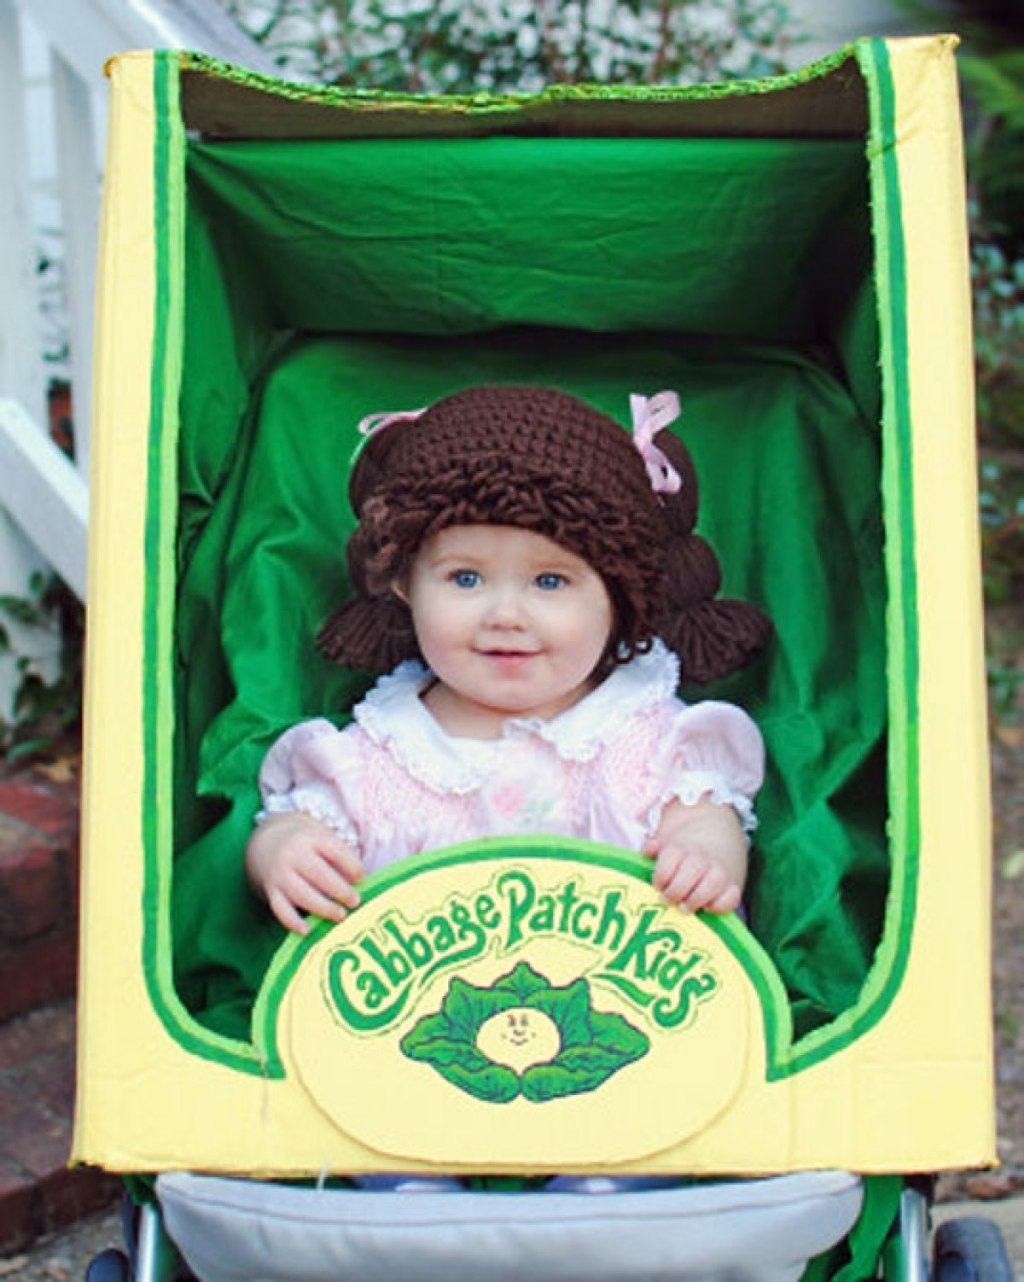 baby wearing cabbage patch doll costume in stroller